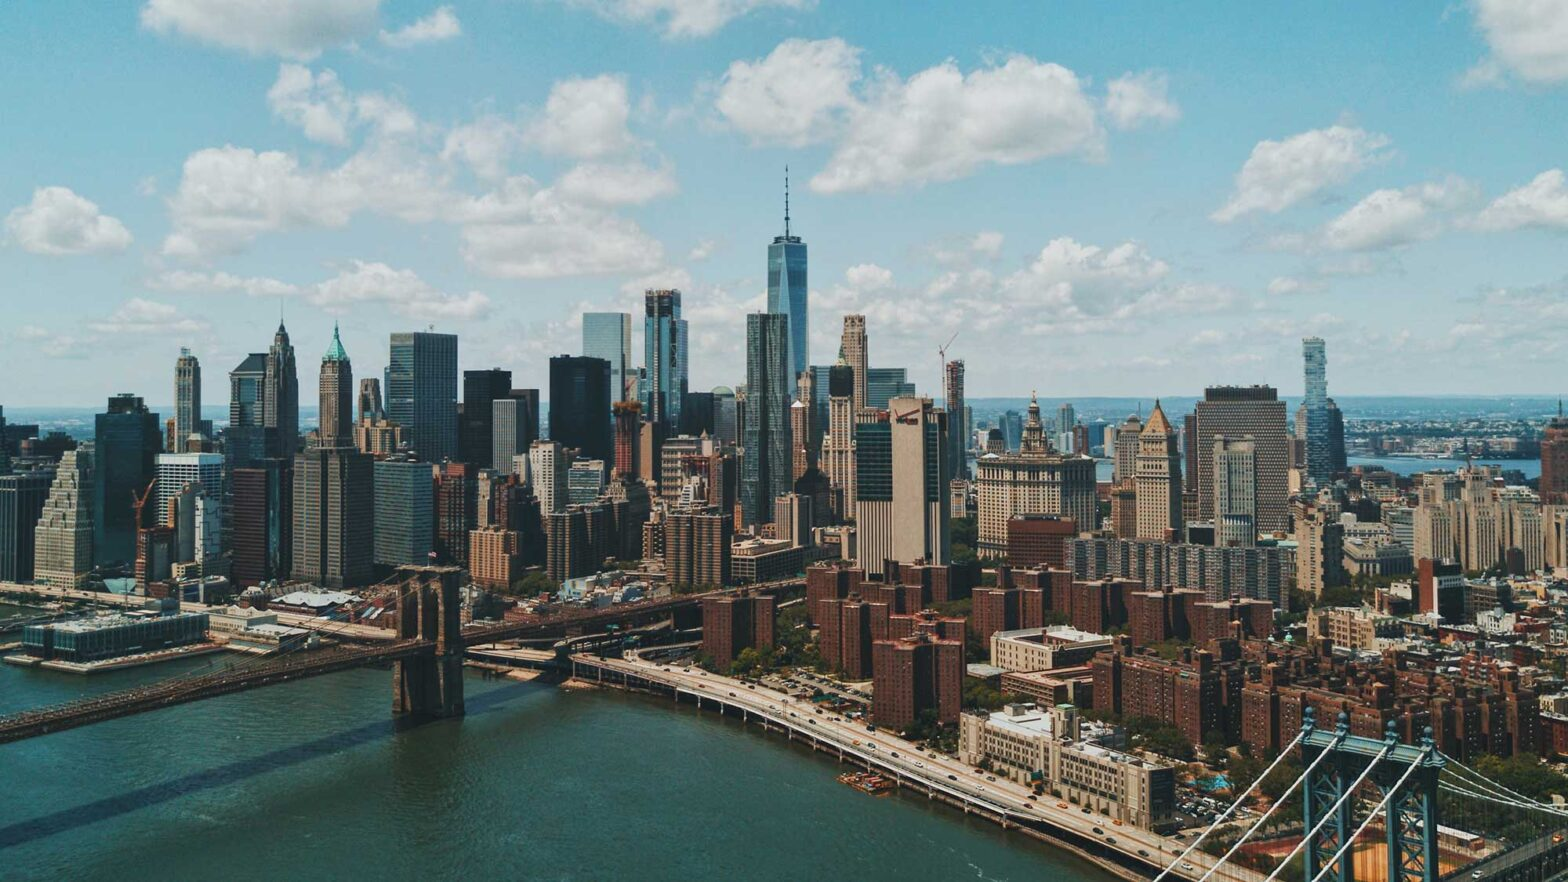 Try These Top 6 Activities When Visiting NYC